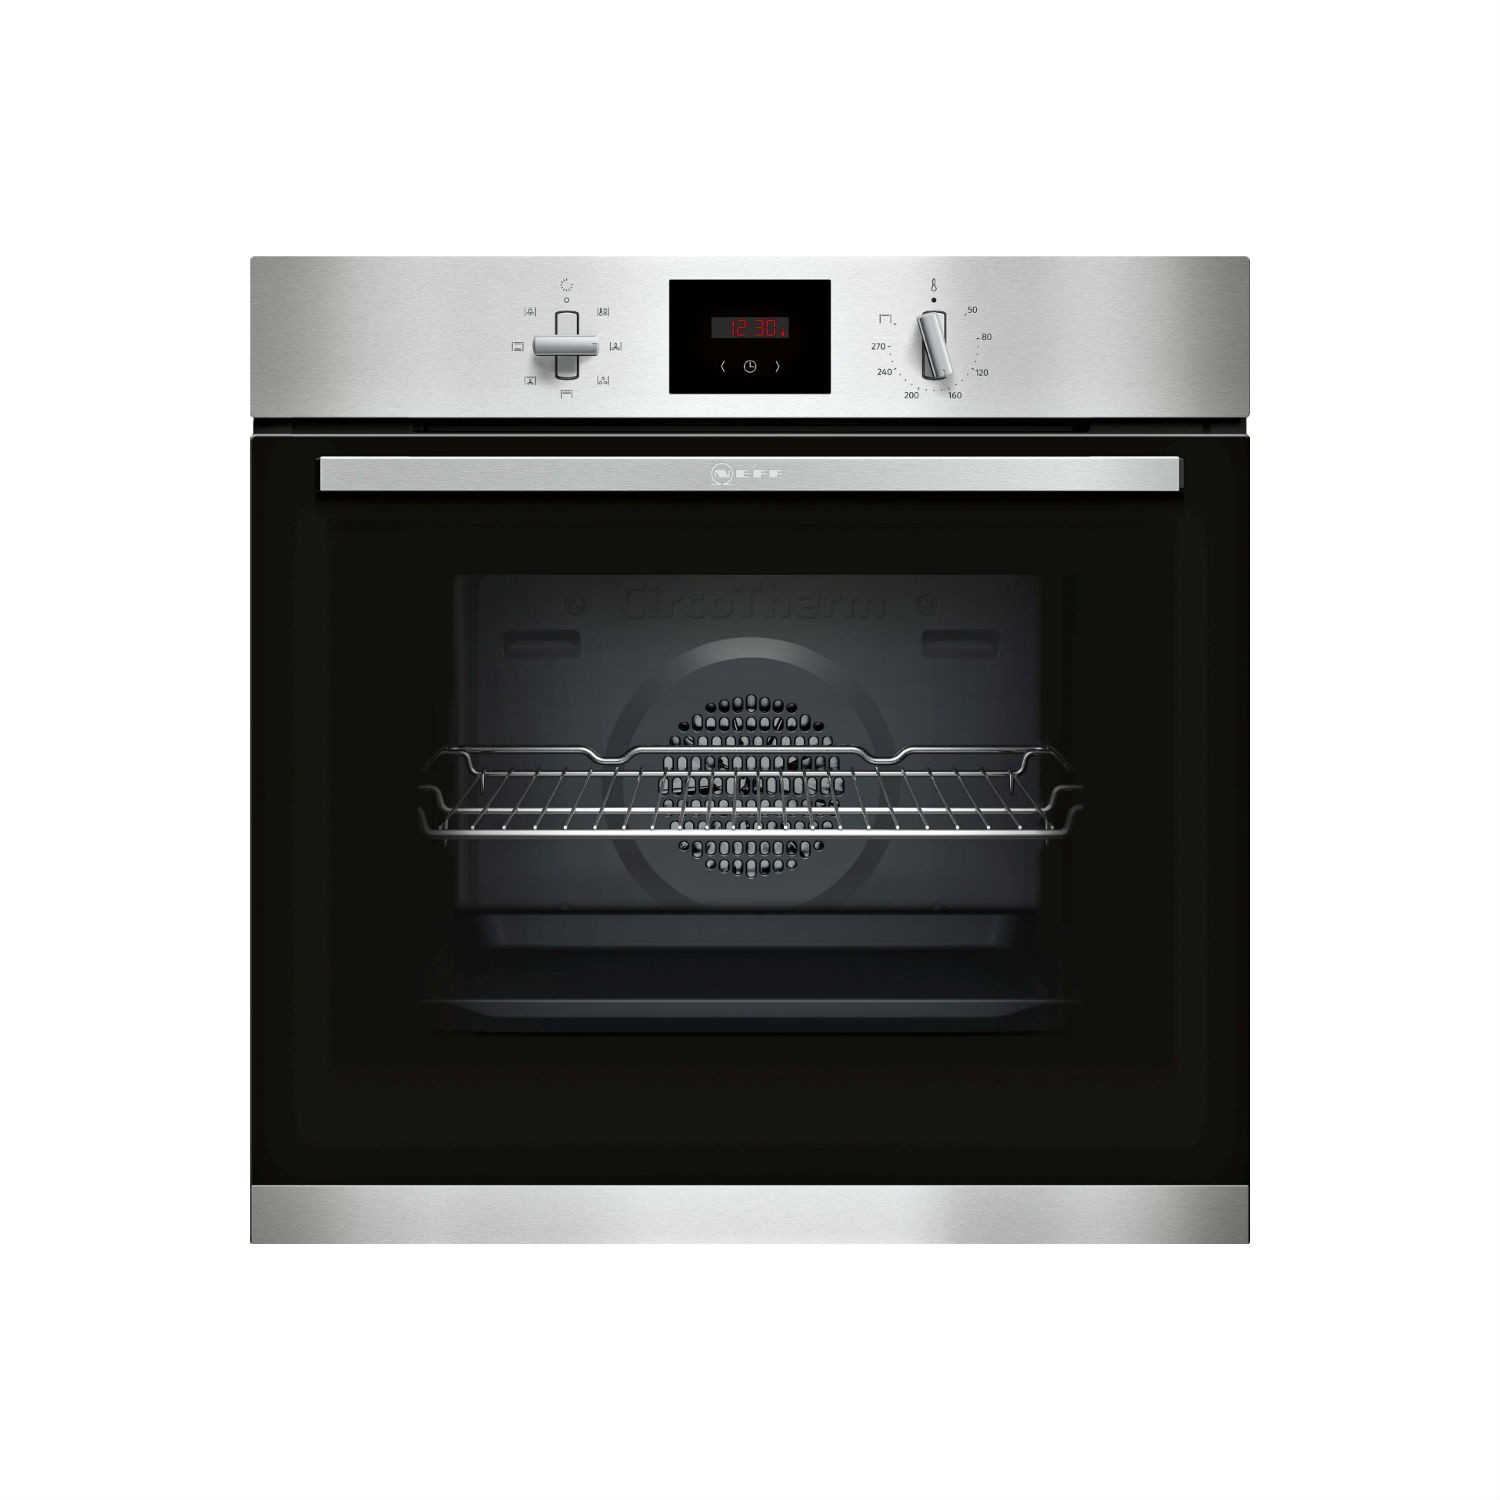 Neff Built In Electric Single Oven - Stainless Steel - A Energy Rated - 0